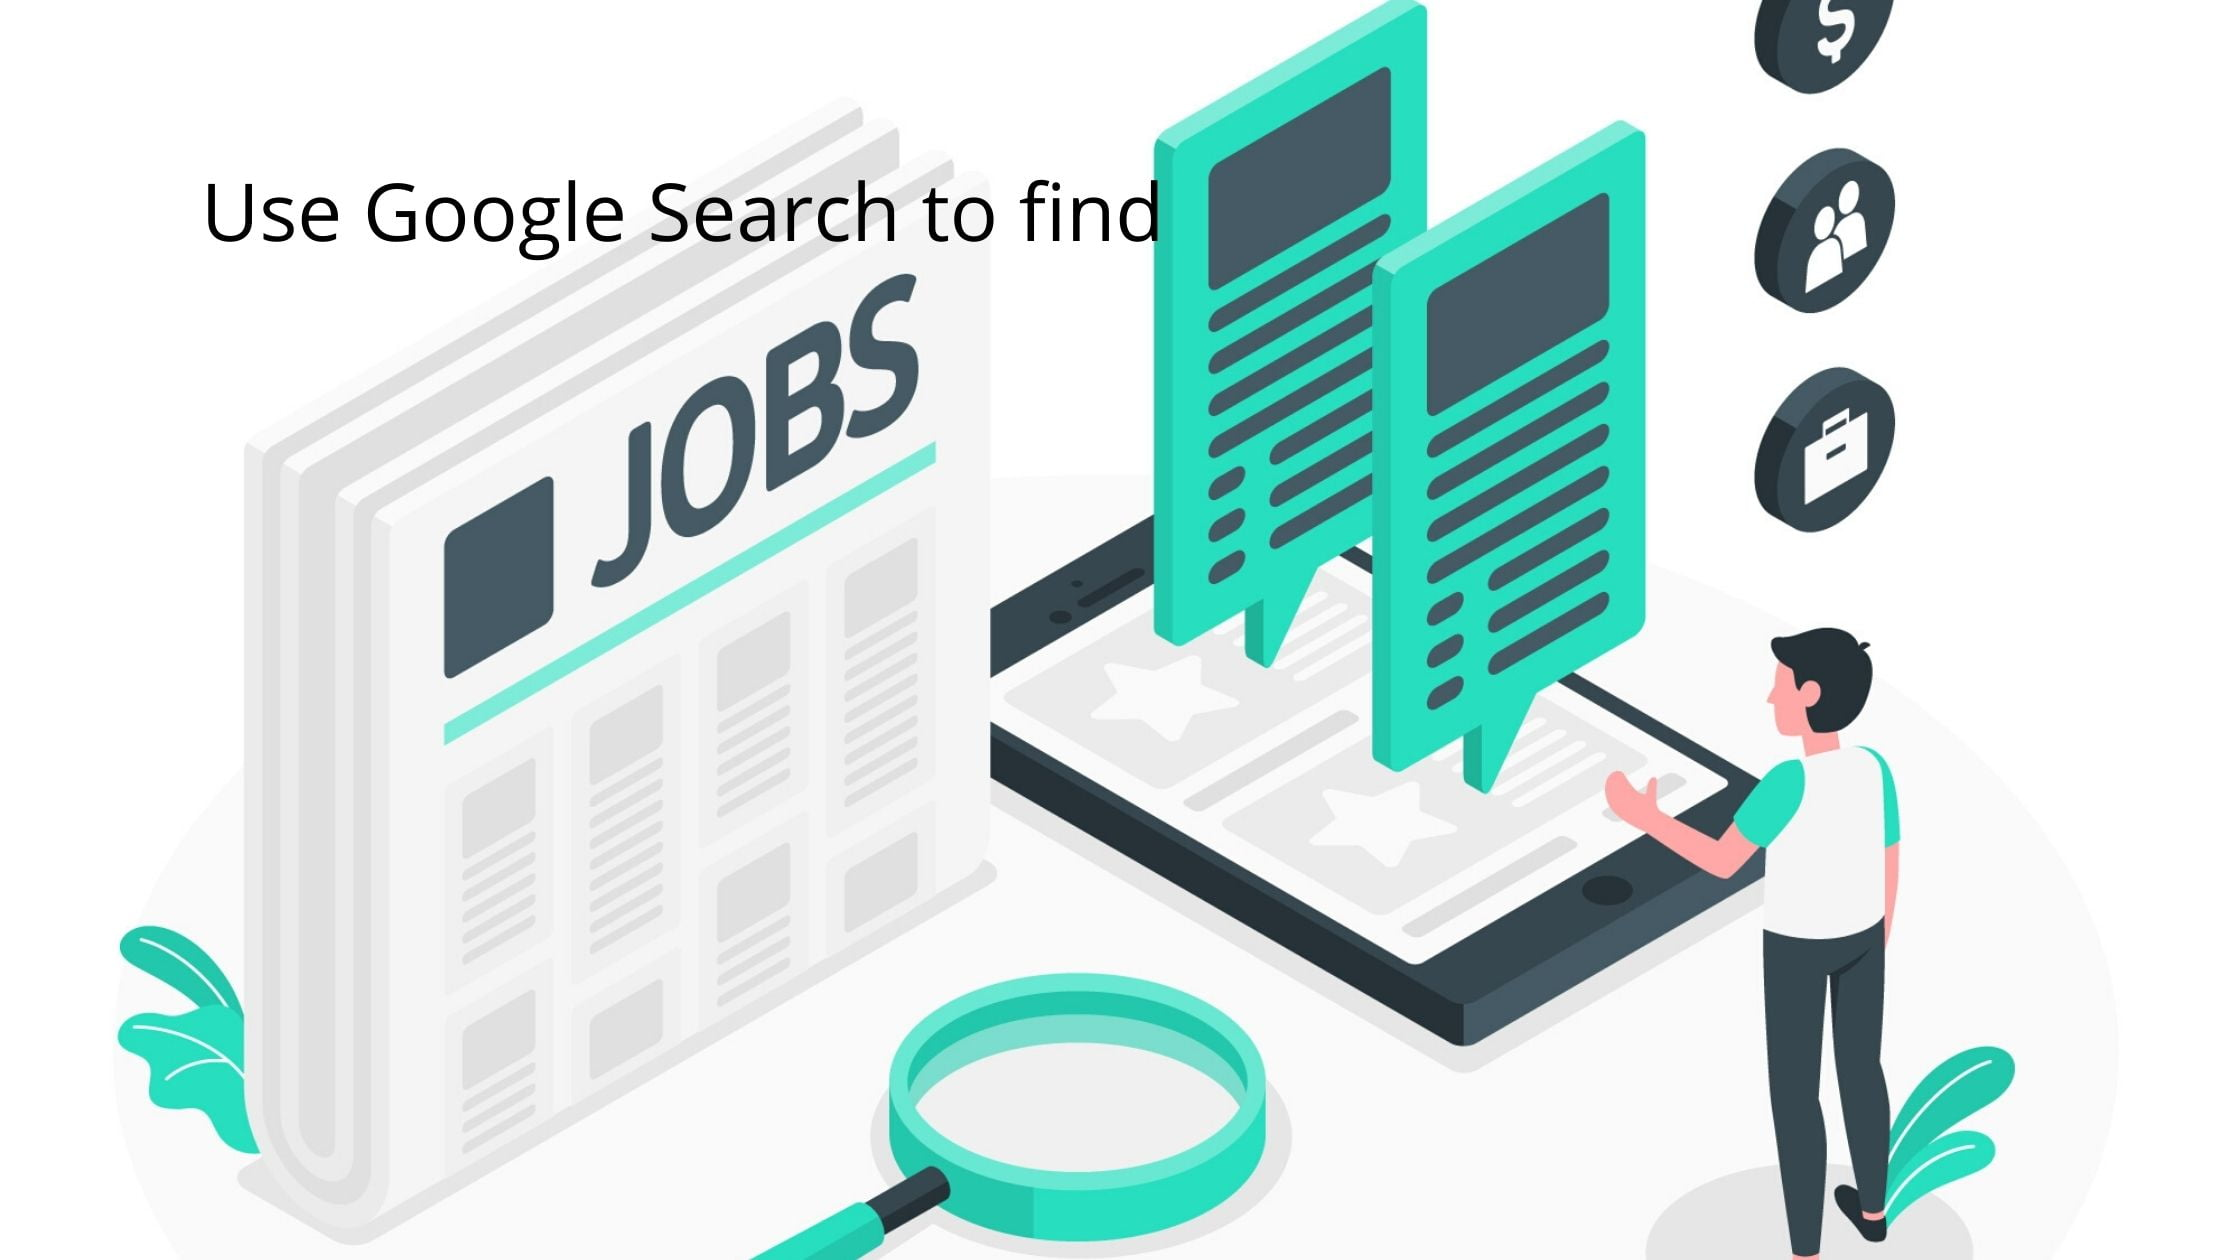 Use Google search to find jobs